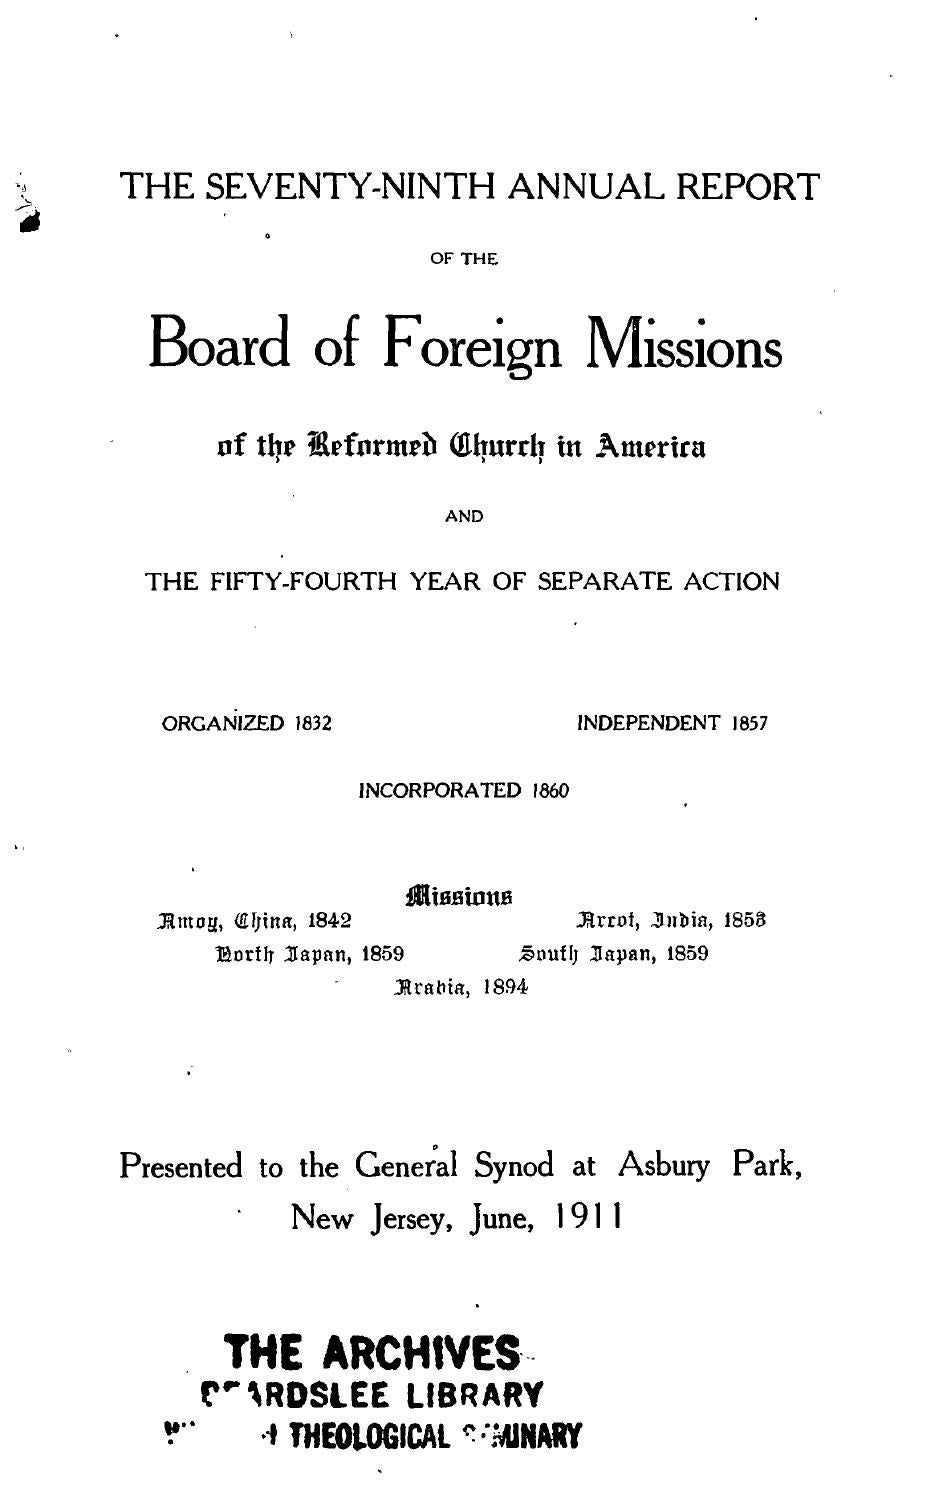 079 board of foreign missions rca 1911 by Hope College